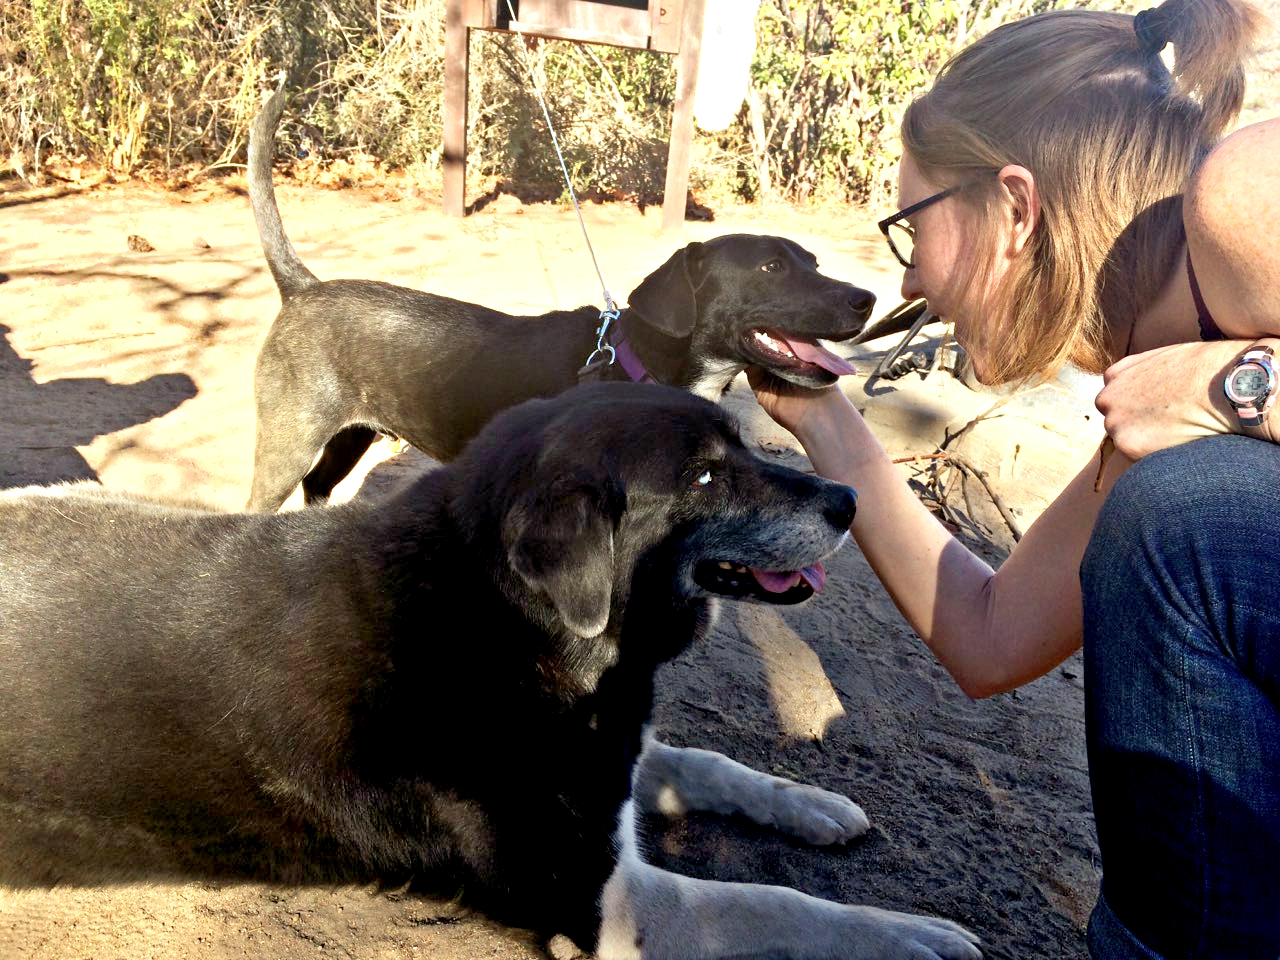 camping with dogs in california, rv camping with dogs, camping with dogs, tent camping with dogs, camping with dogs in san diego, camping with dogs tips